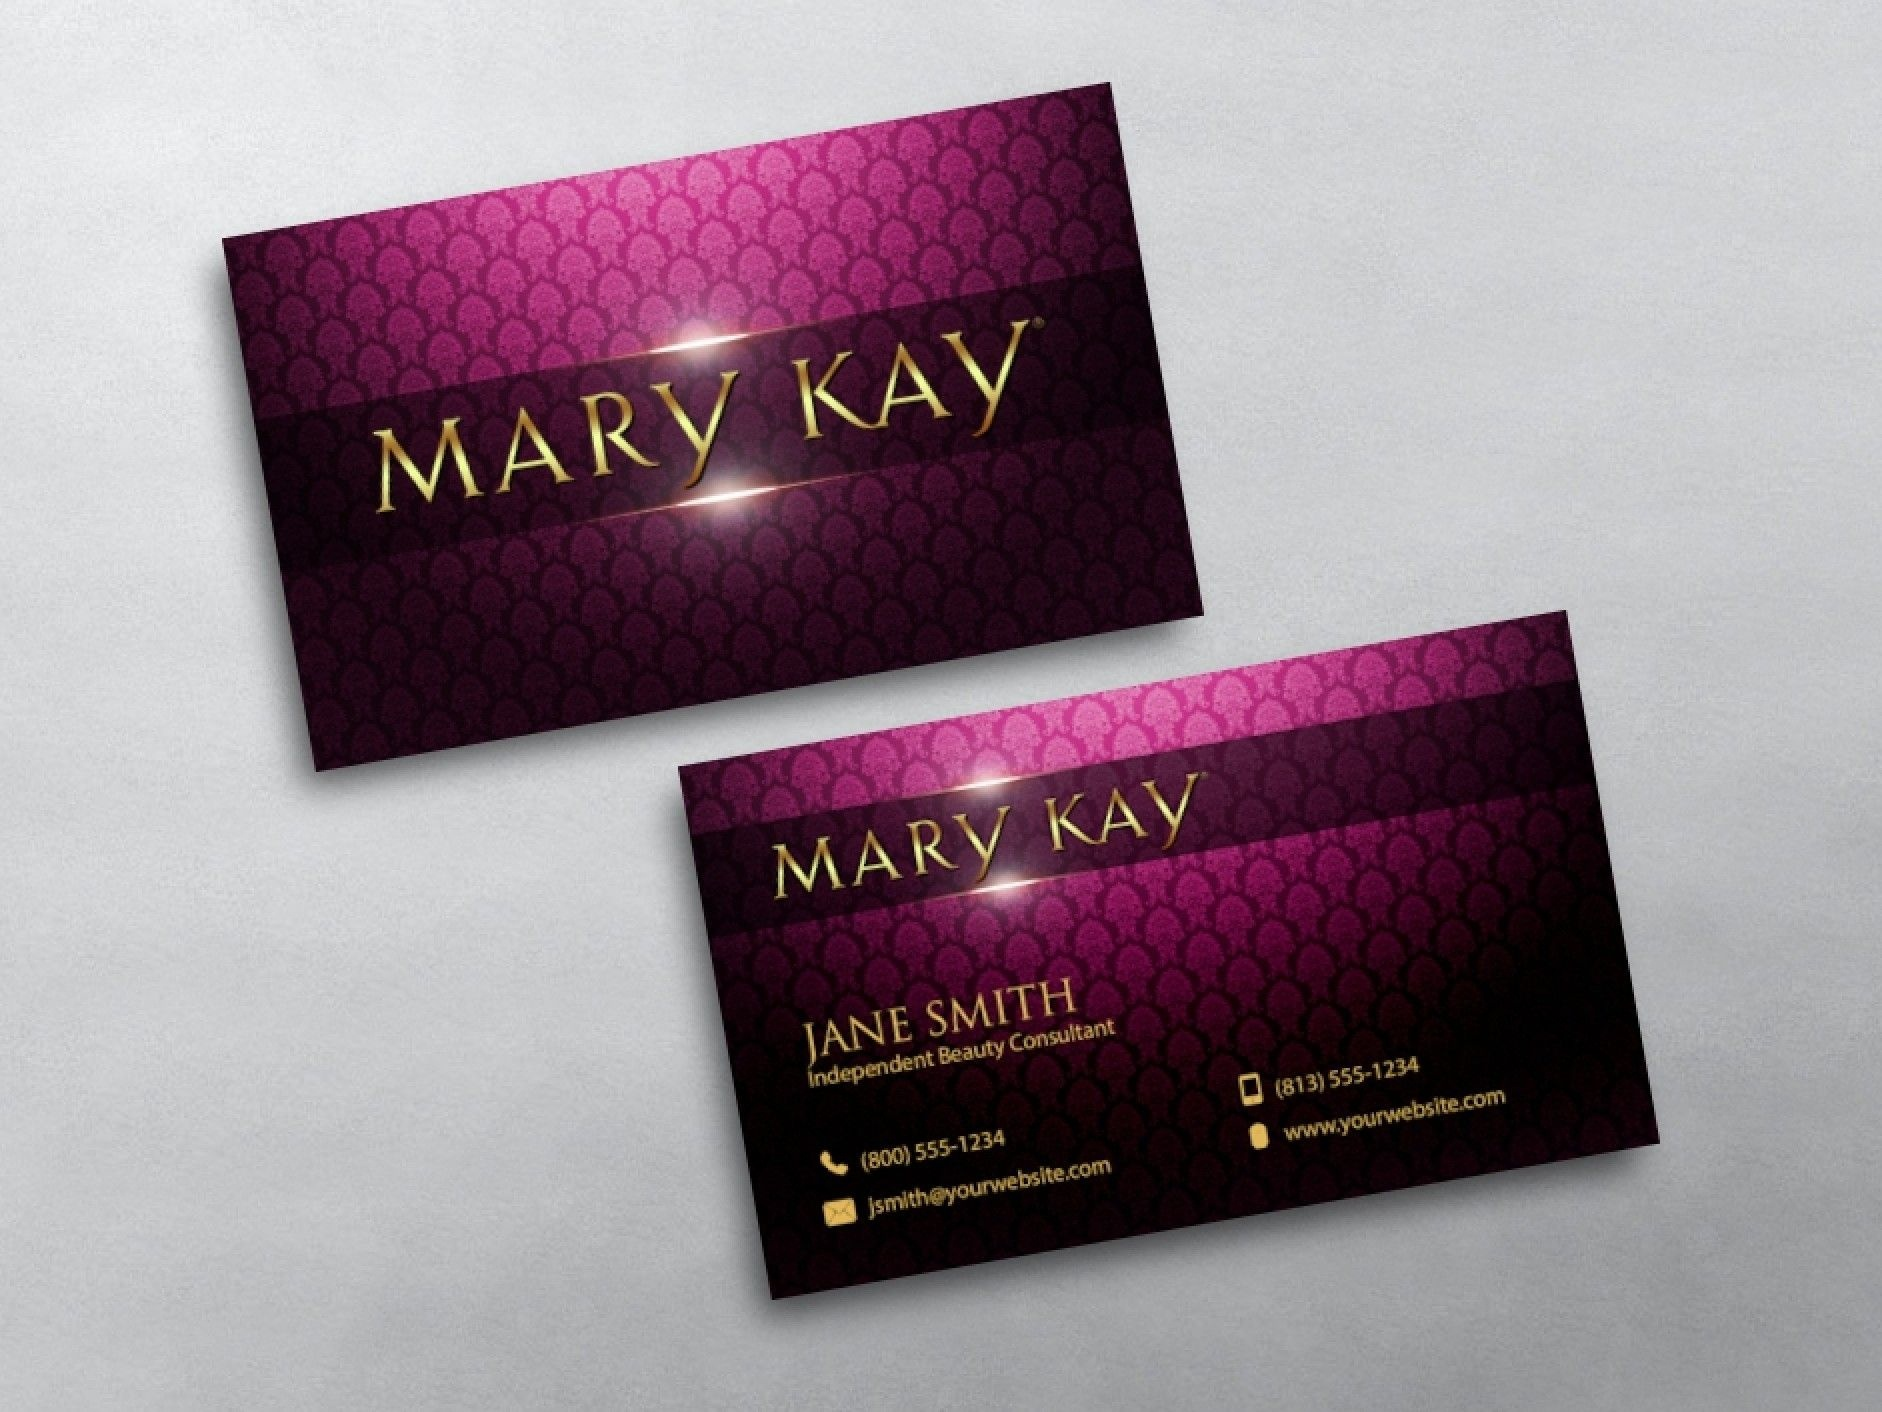 Mary Kay Business Cards In 2019 | Pink Dreams | Mary Kay, Free - Free Printable Mary Kay Business Cards